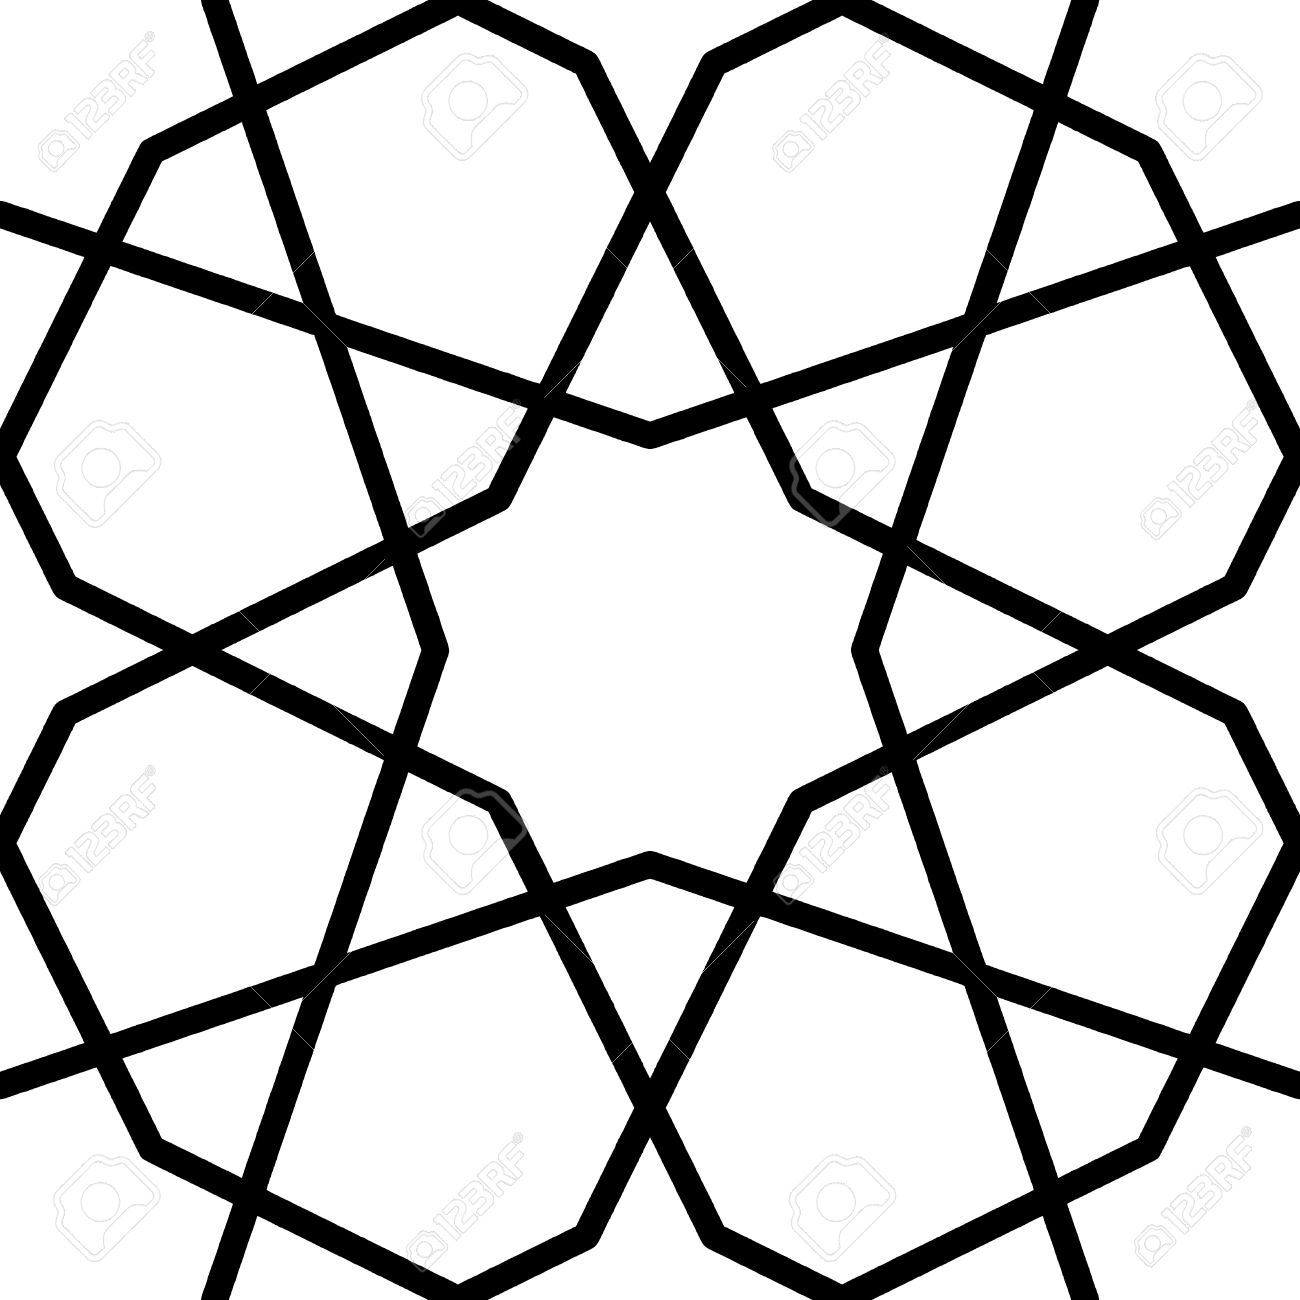 Geometric Islamic Pattern By Sun And Flower Royalty Free Cliparts ... for Simple Islamic Designs  110ylc